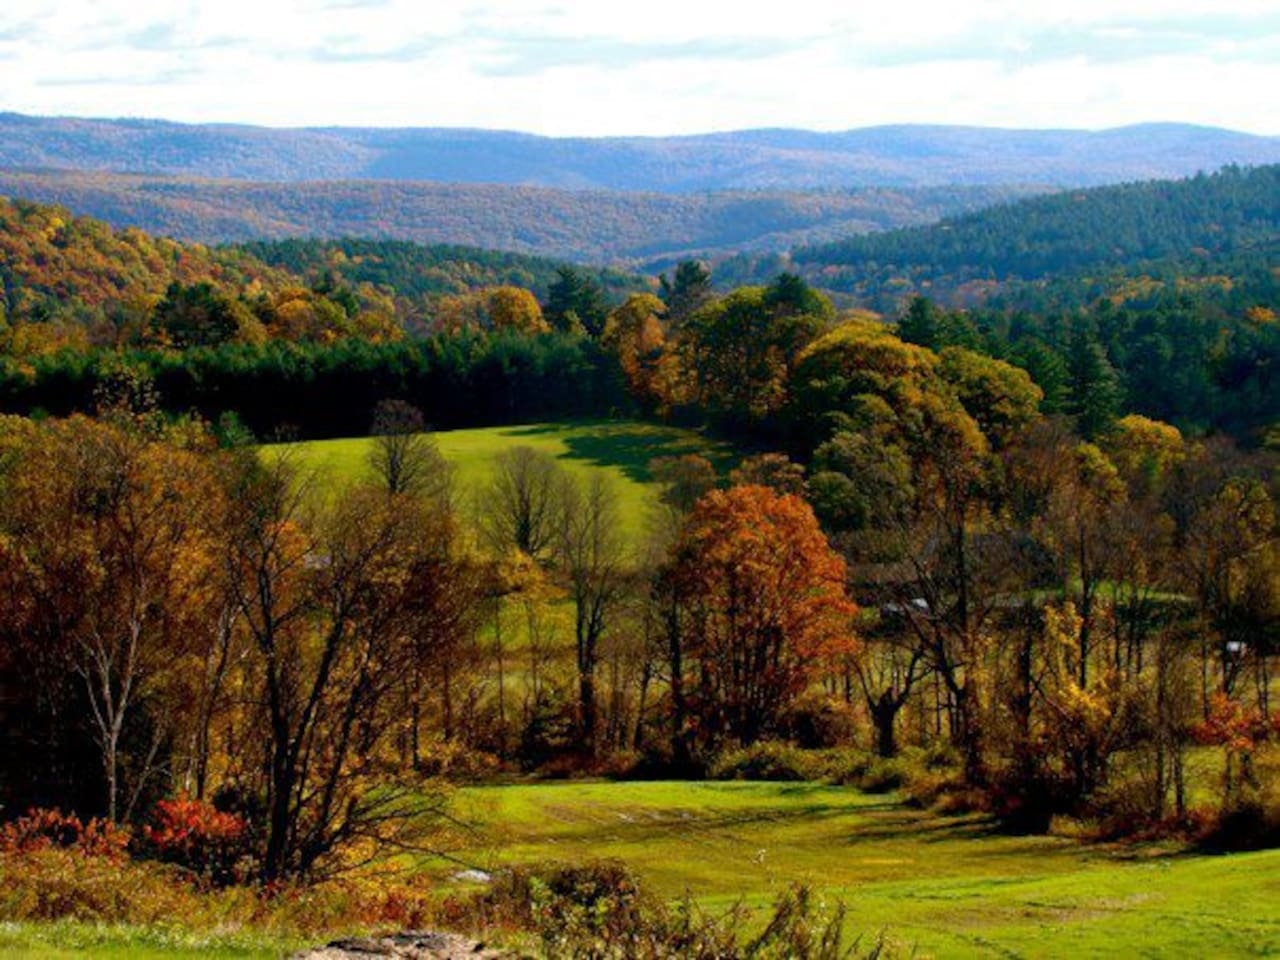 View from the property during fall foliage.